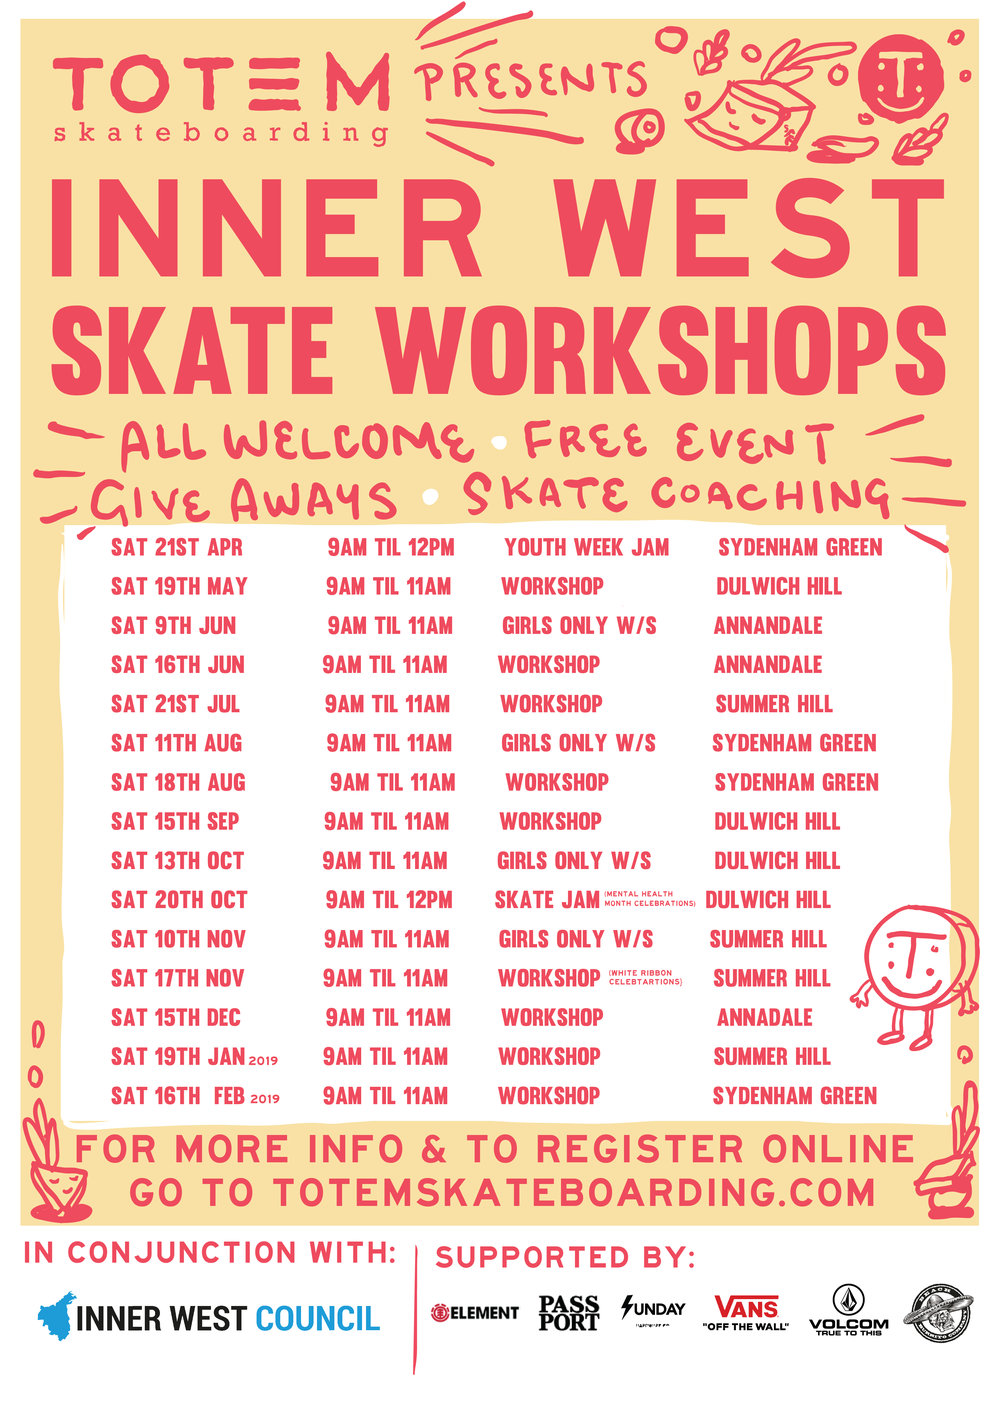 TOTEM_INNER WEST WORKSHOP_POSTER FINAL.jpg